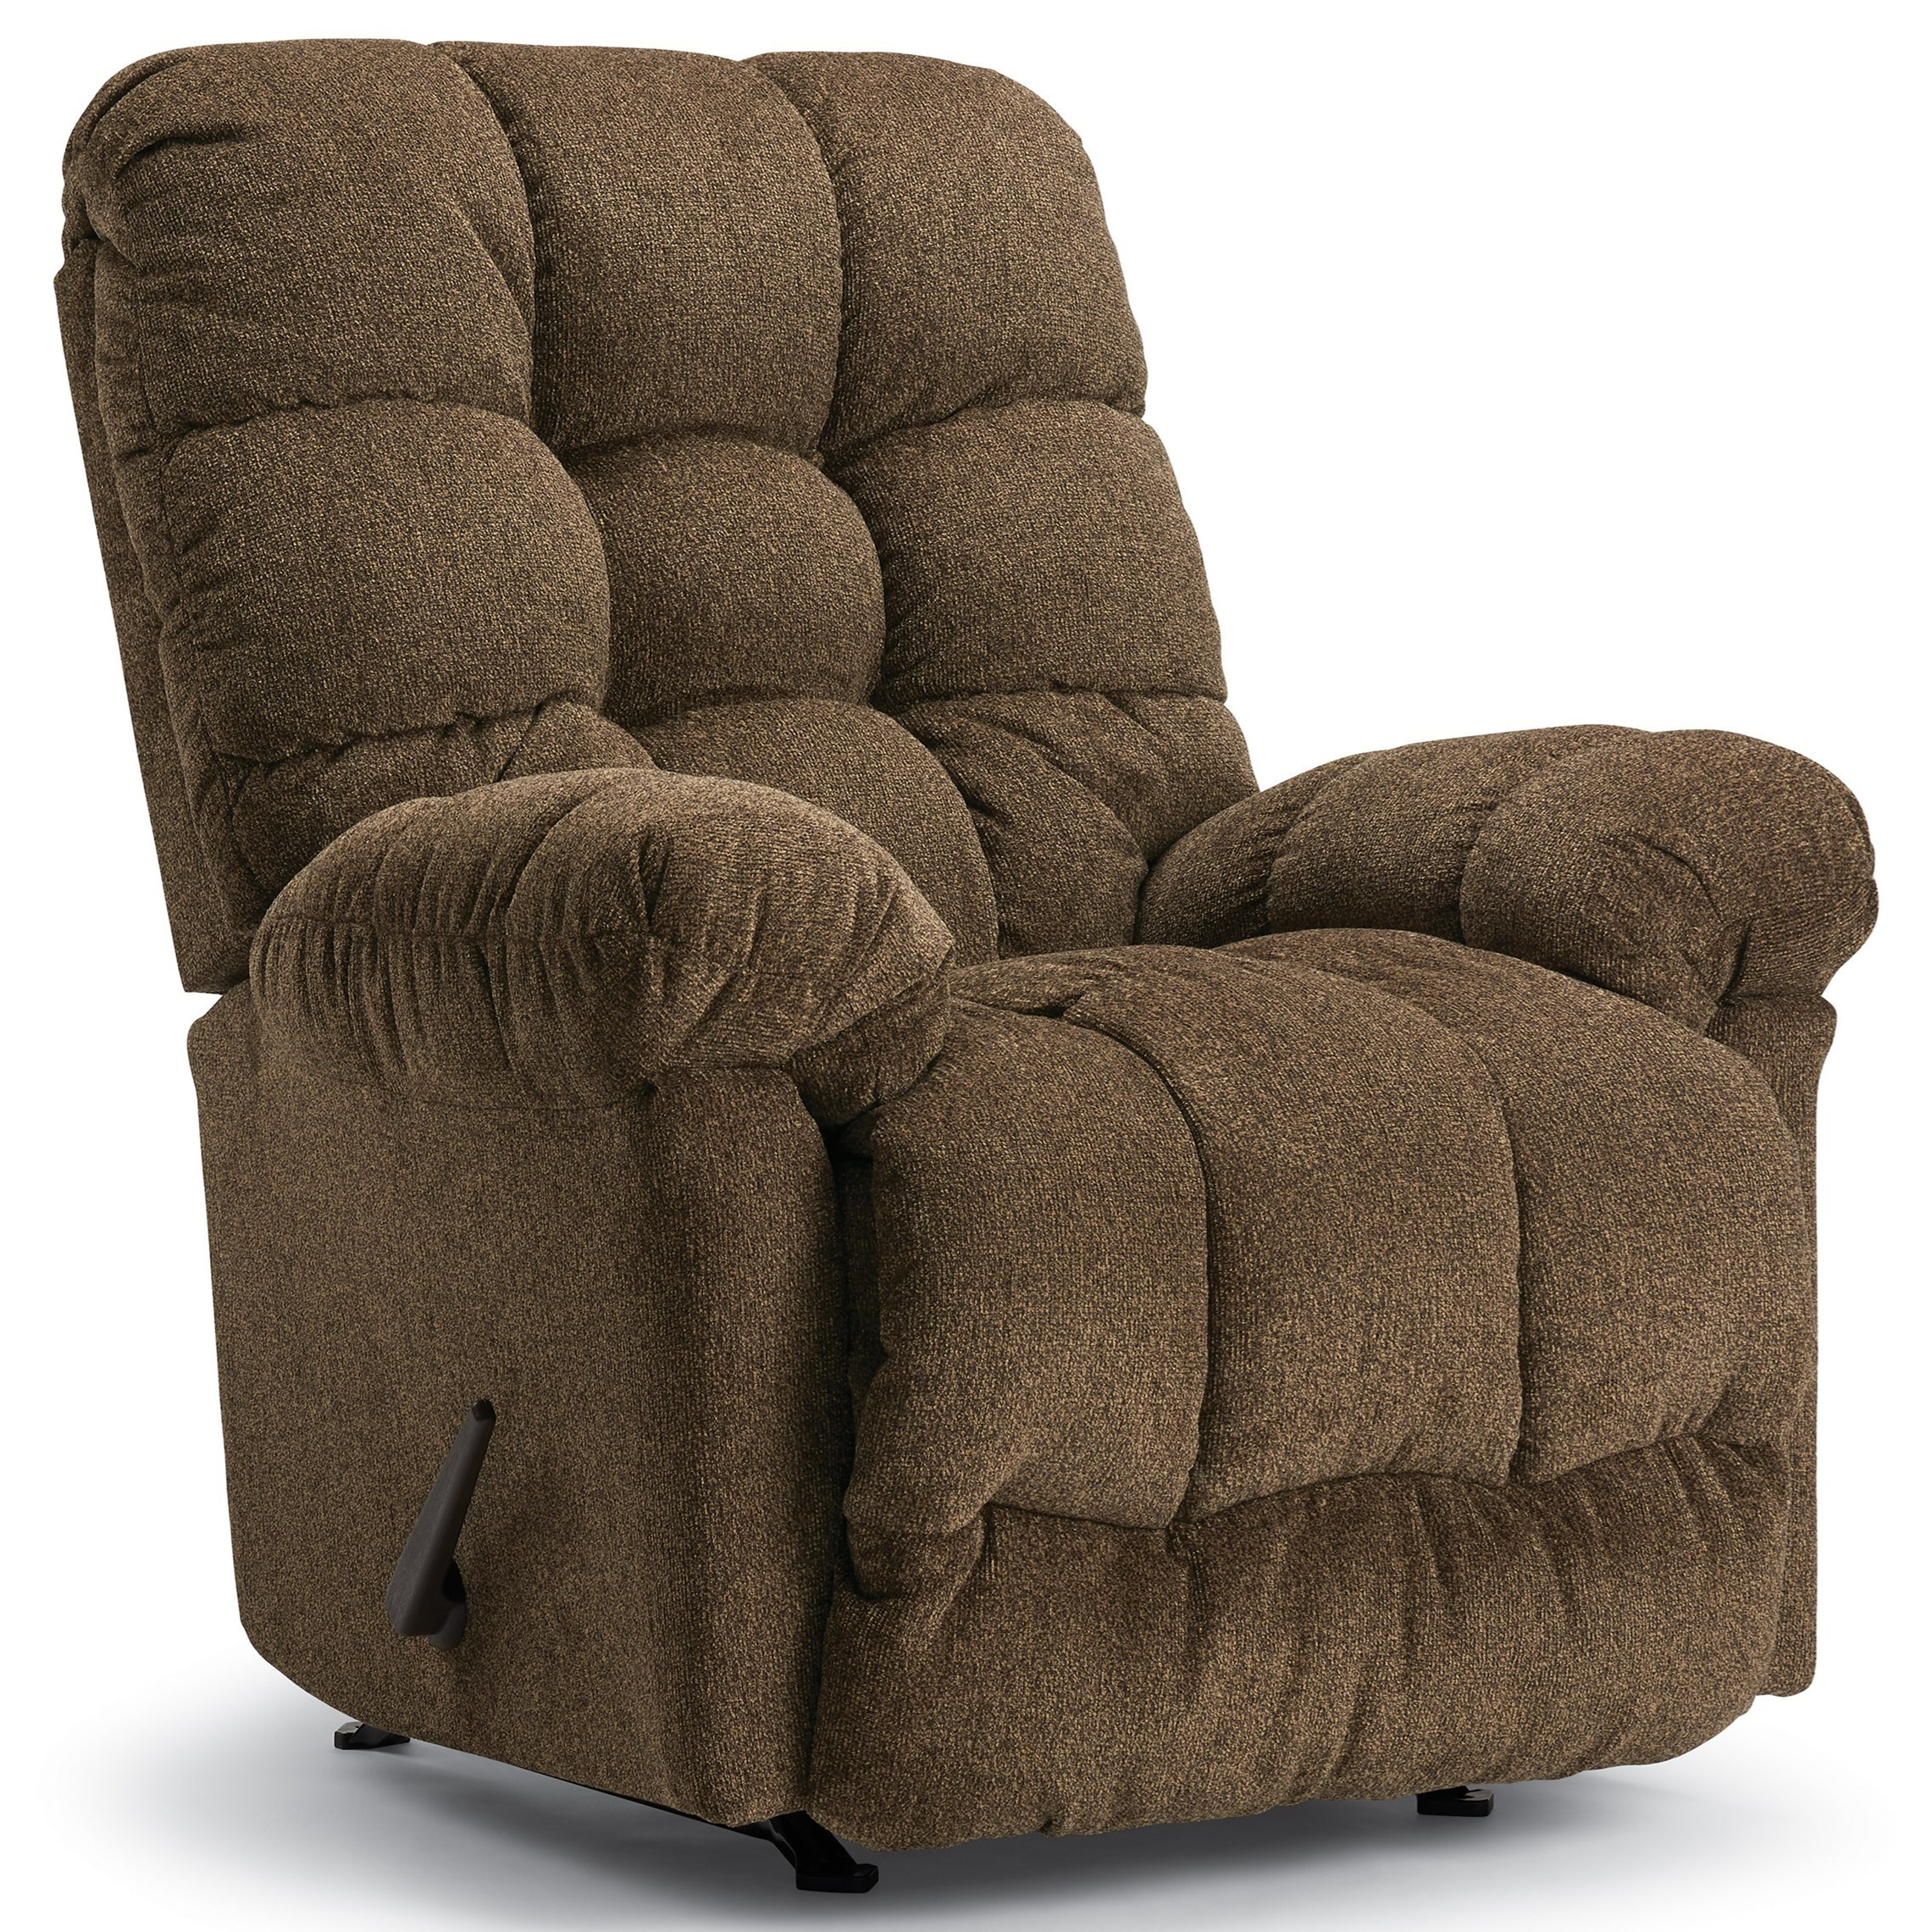 Medium Recliners Brosmer Swivel Glider Recliner by Bravo Furniture at Bennett's Furniture and Mattresses